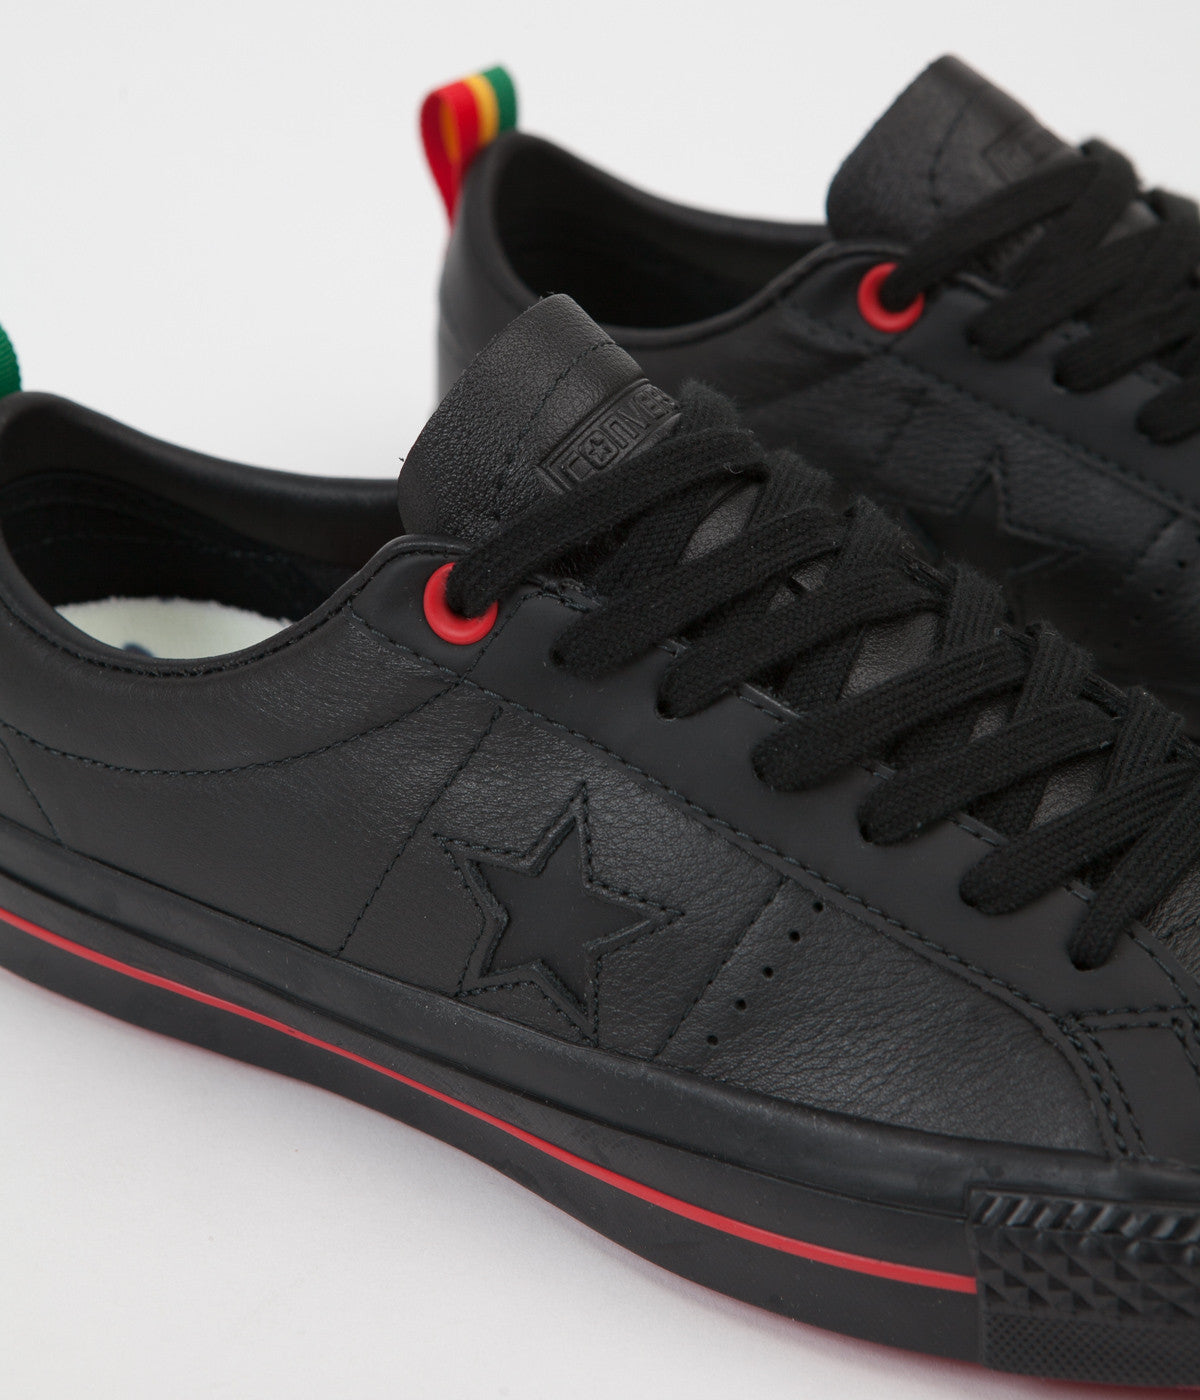 4bff09623b6d ... Converse One Star Pro Ox Eli Reed Shoes - Black   Black   White ...